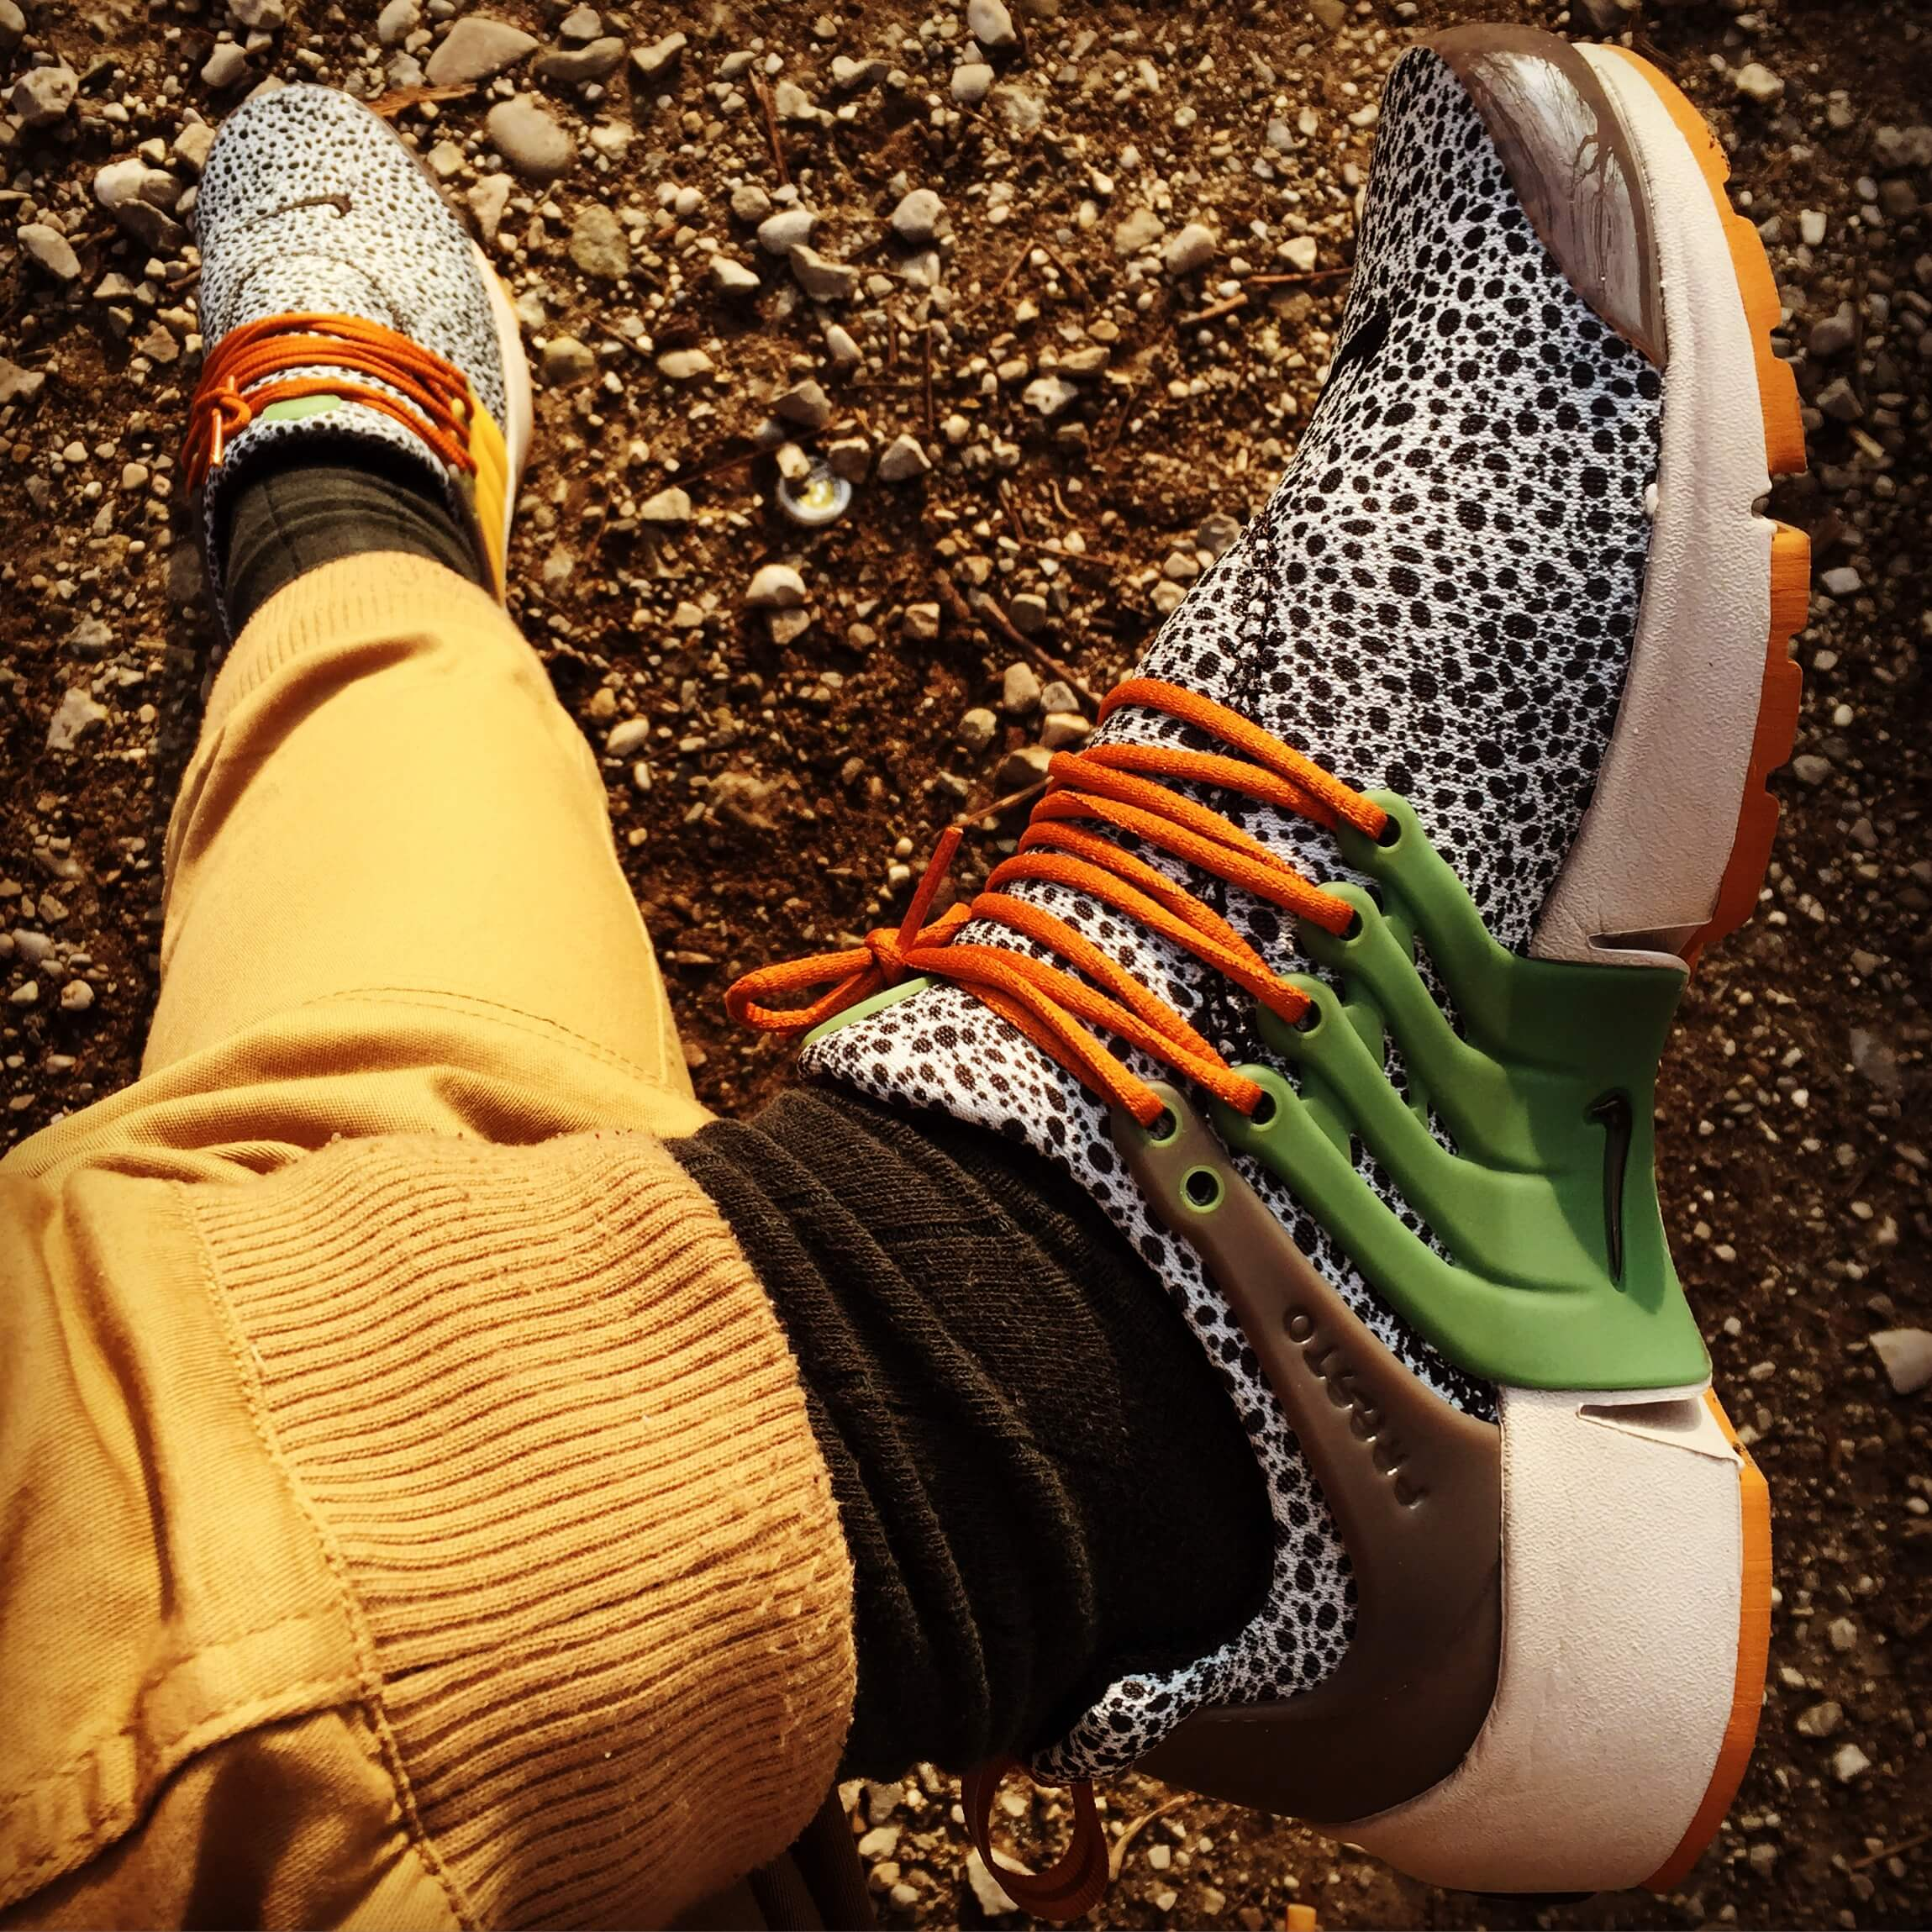 Nike-Presto-QS-Safari-Top-View-Benstah-Onfeet